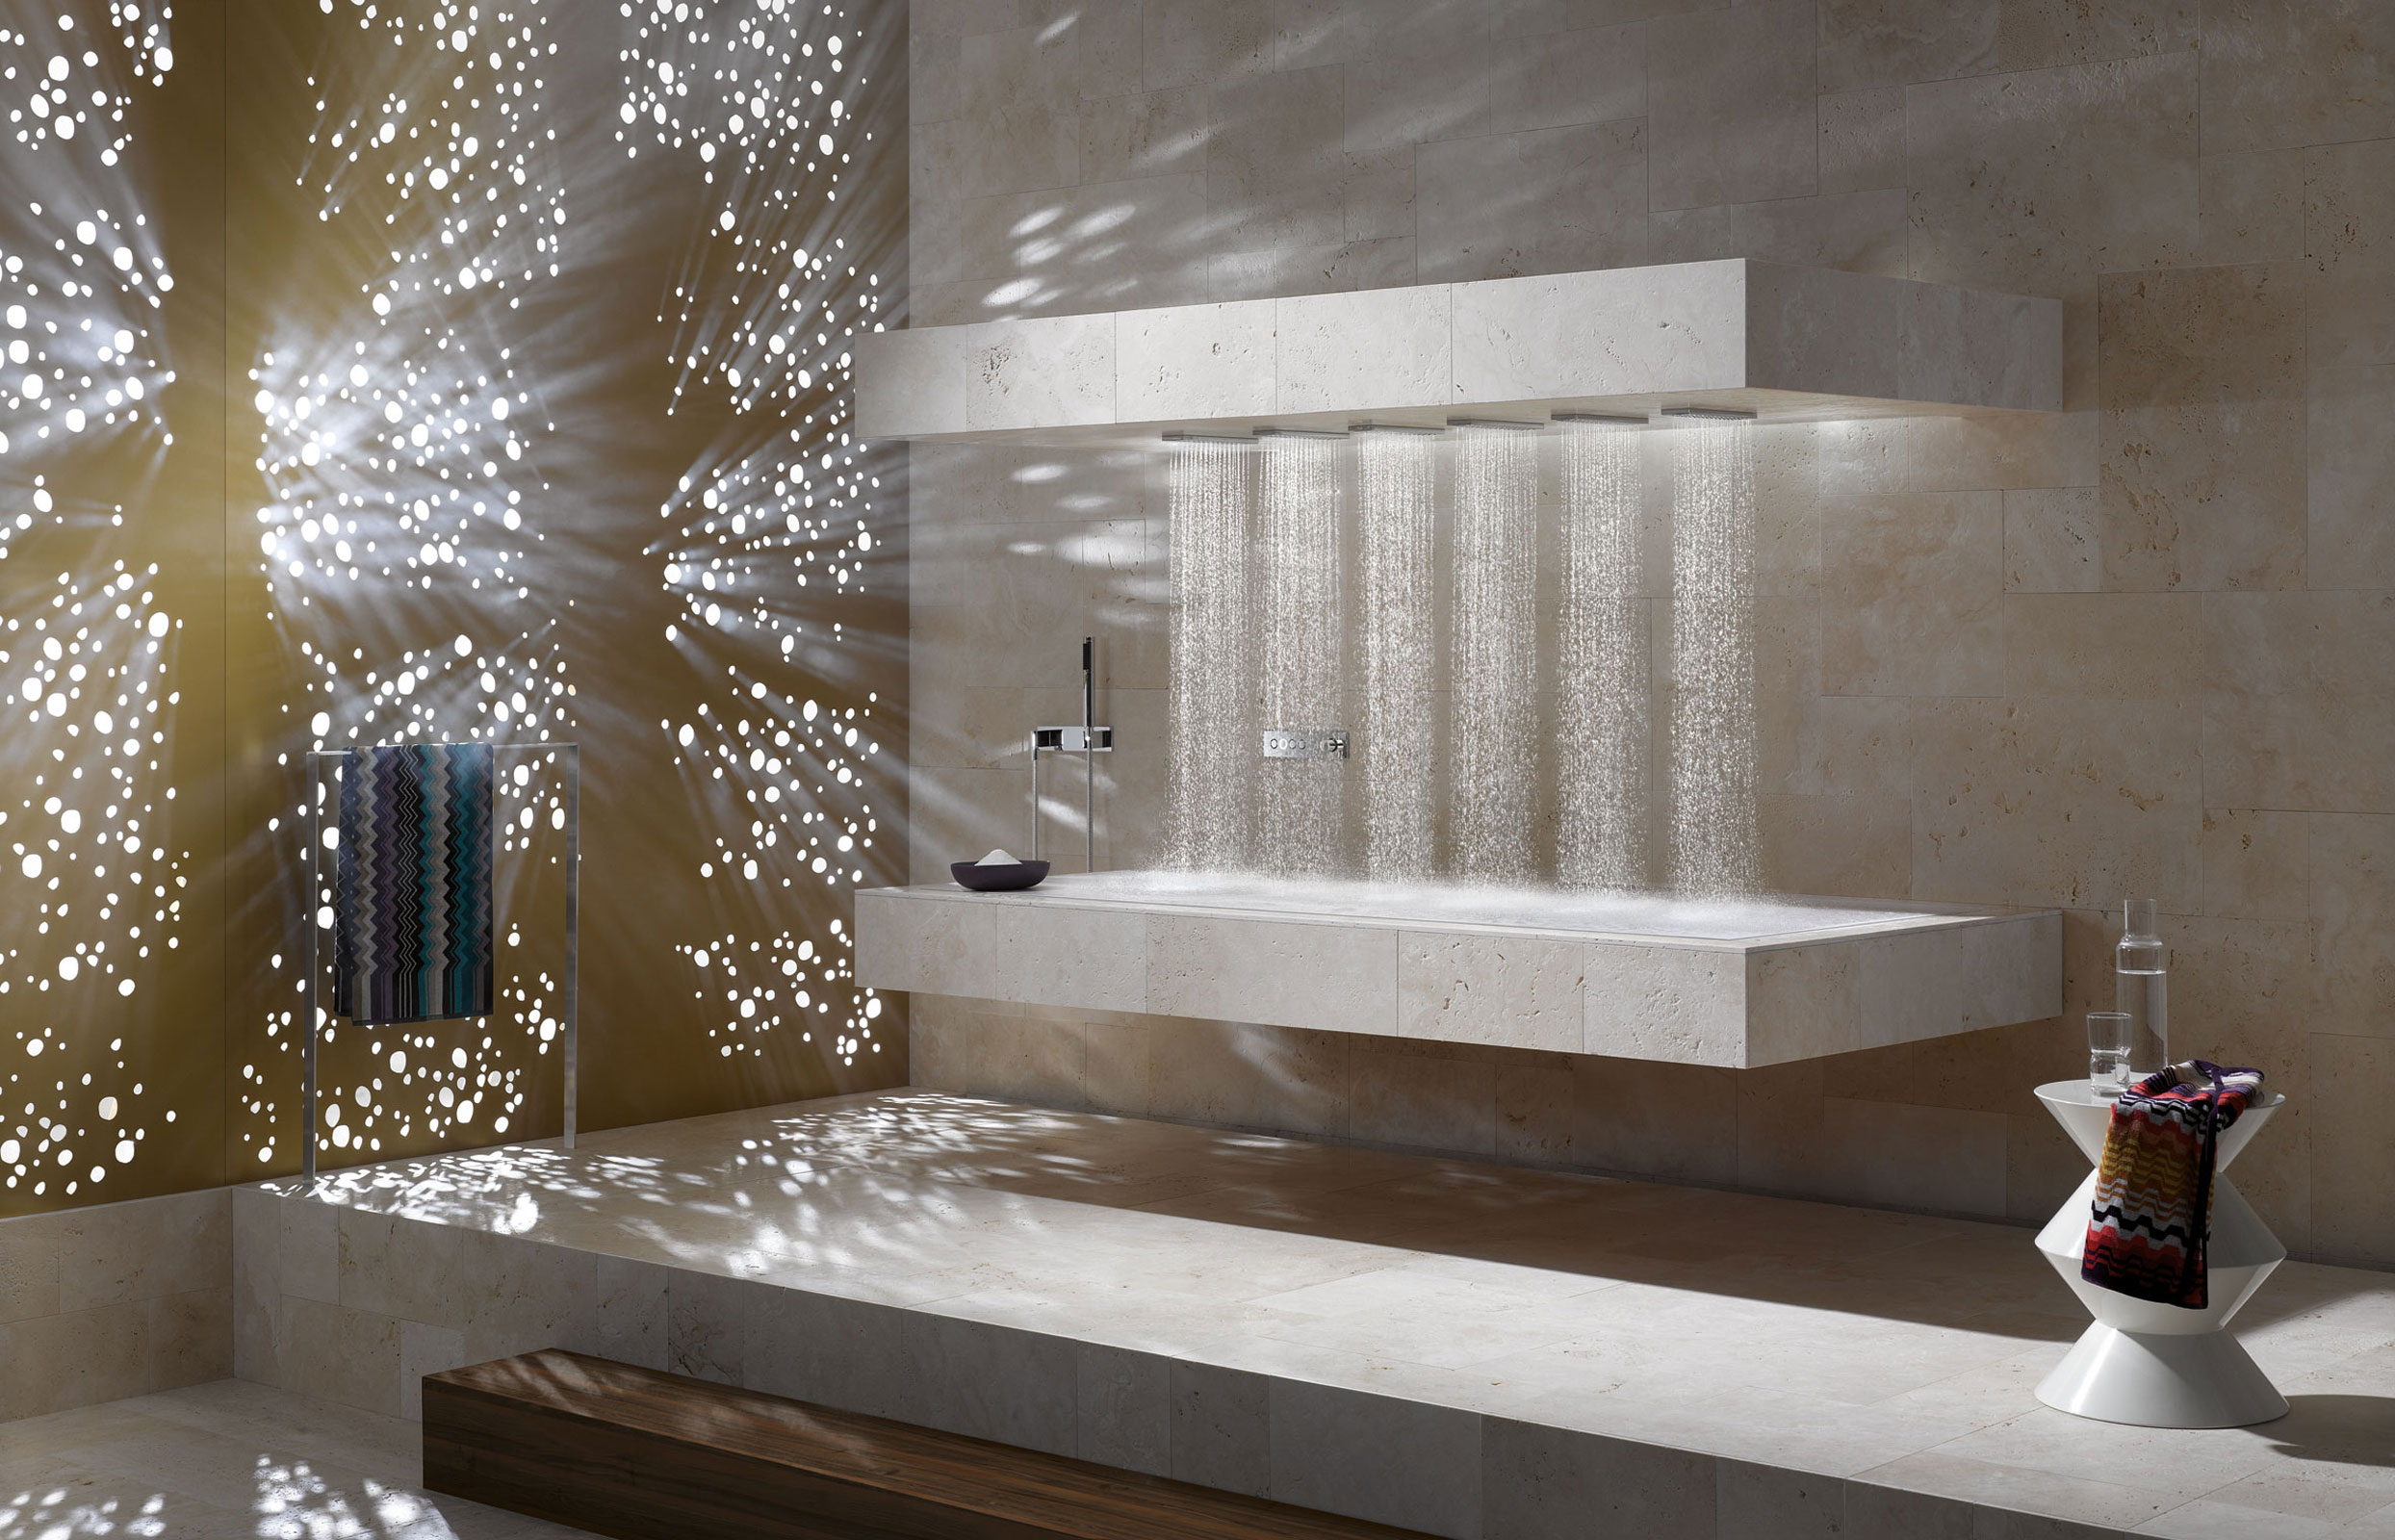 Horizontal Shower By Dornbracht Will Rejuvenate Your Body